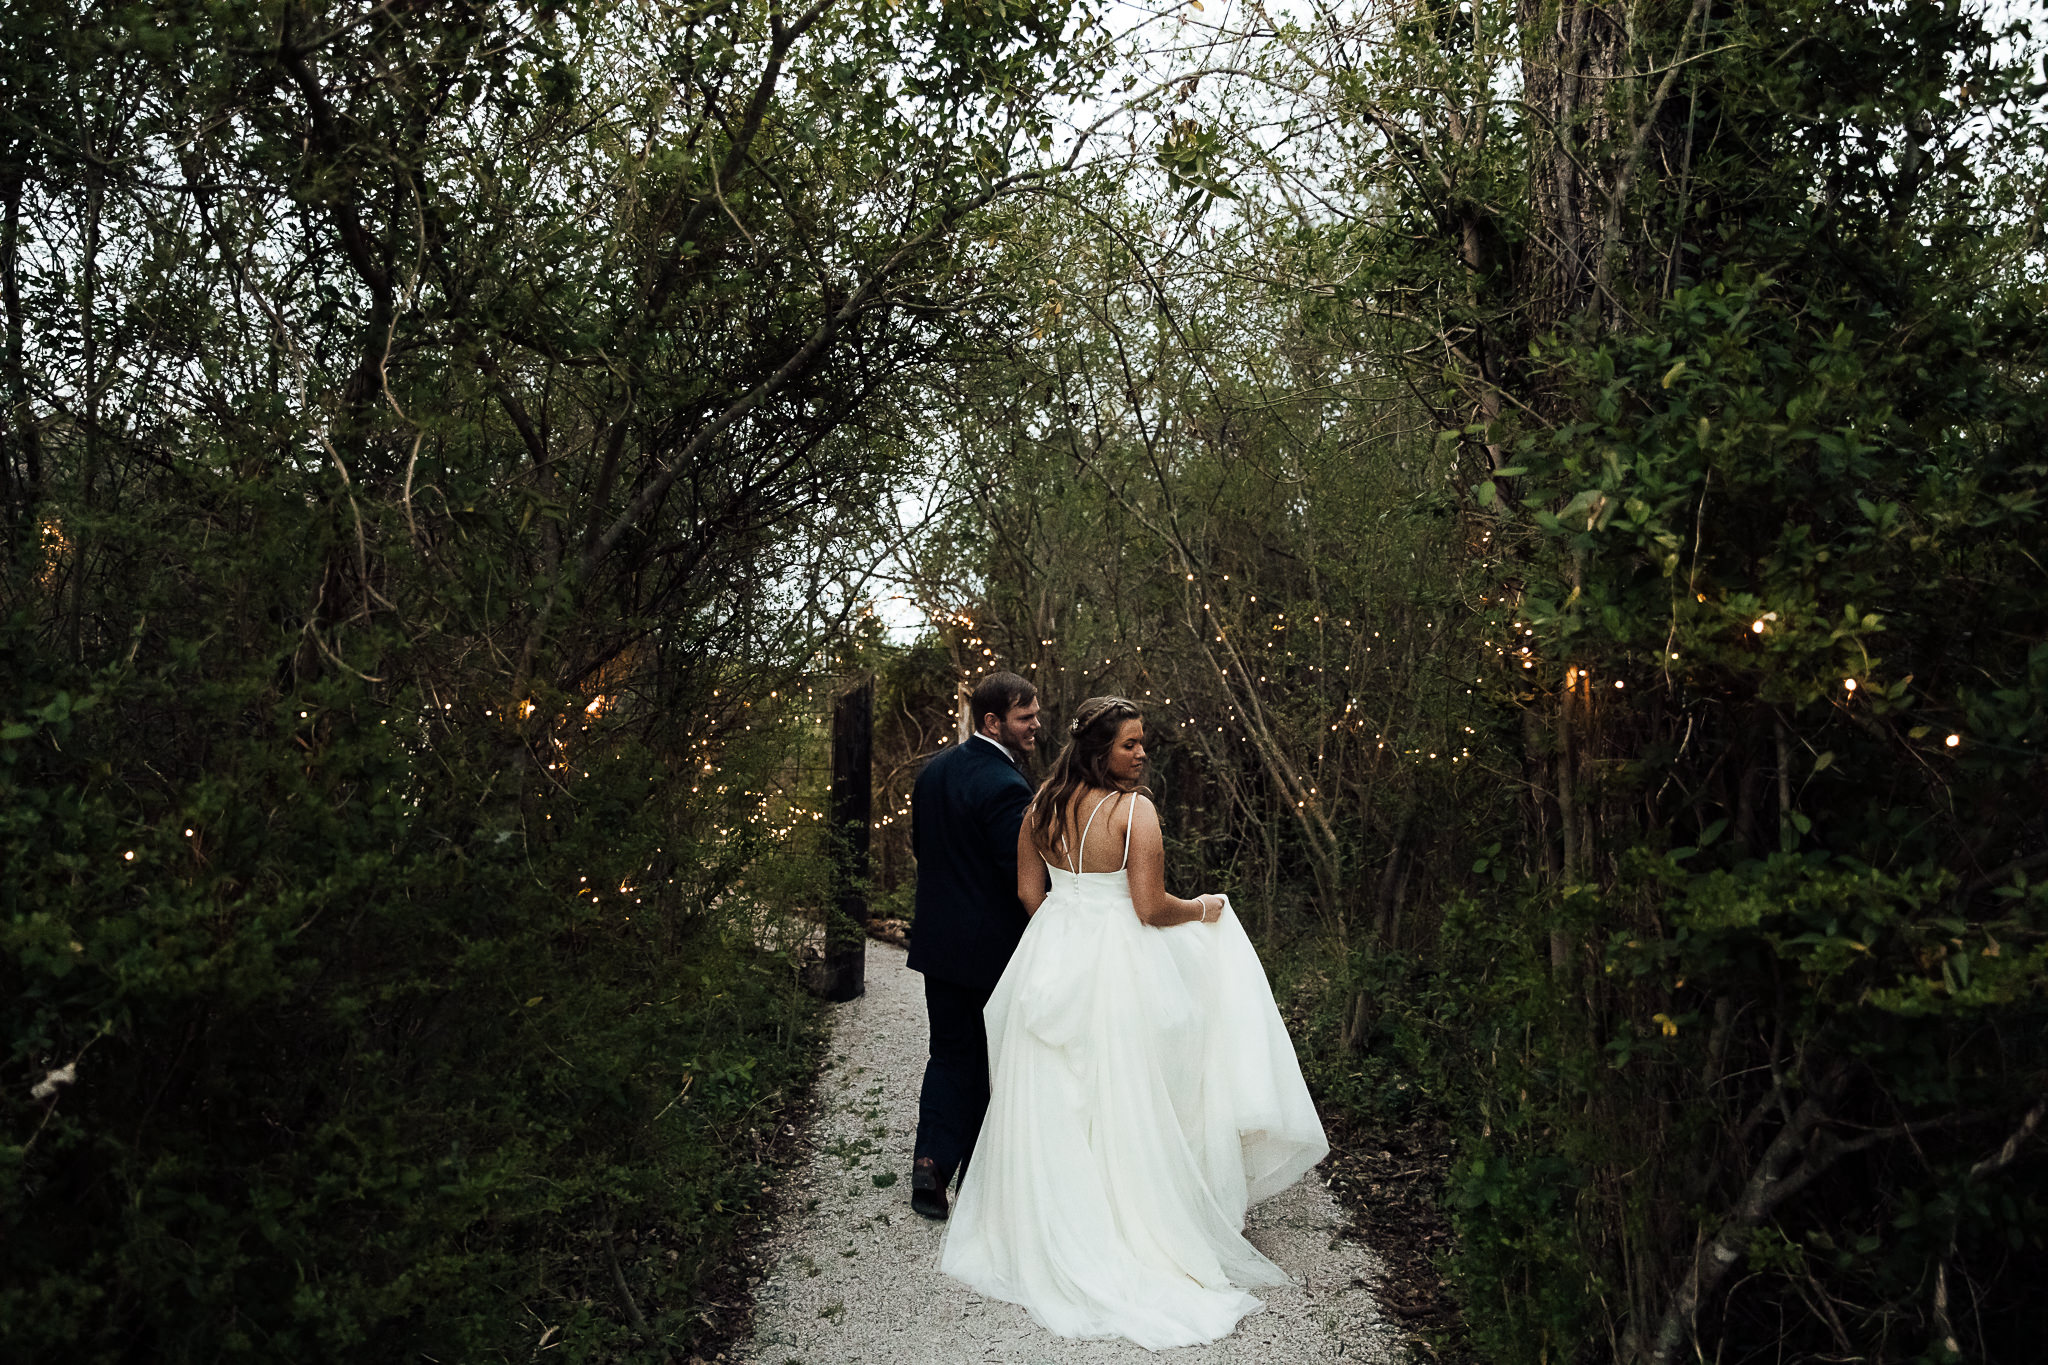 memphis-wedding-photographer-meadow-hill-farms-thewarmtharoundyou (74 of 93).jpg